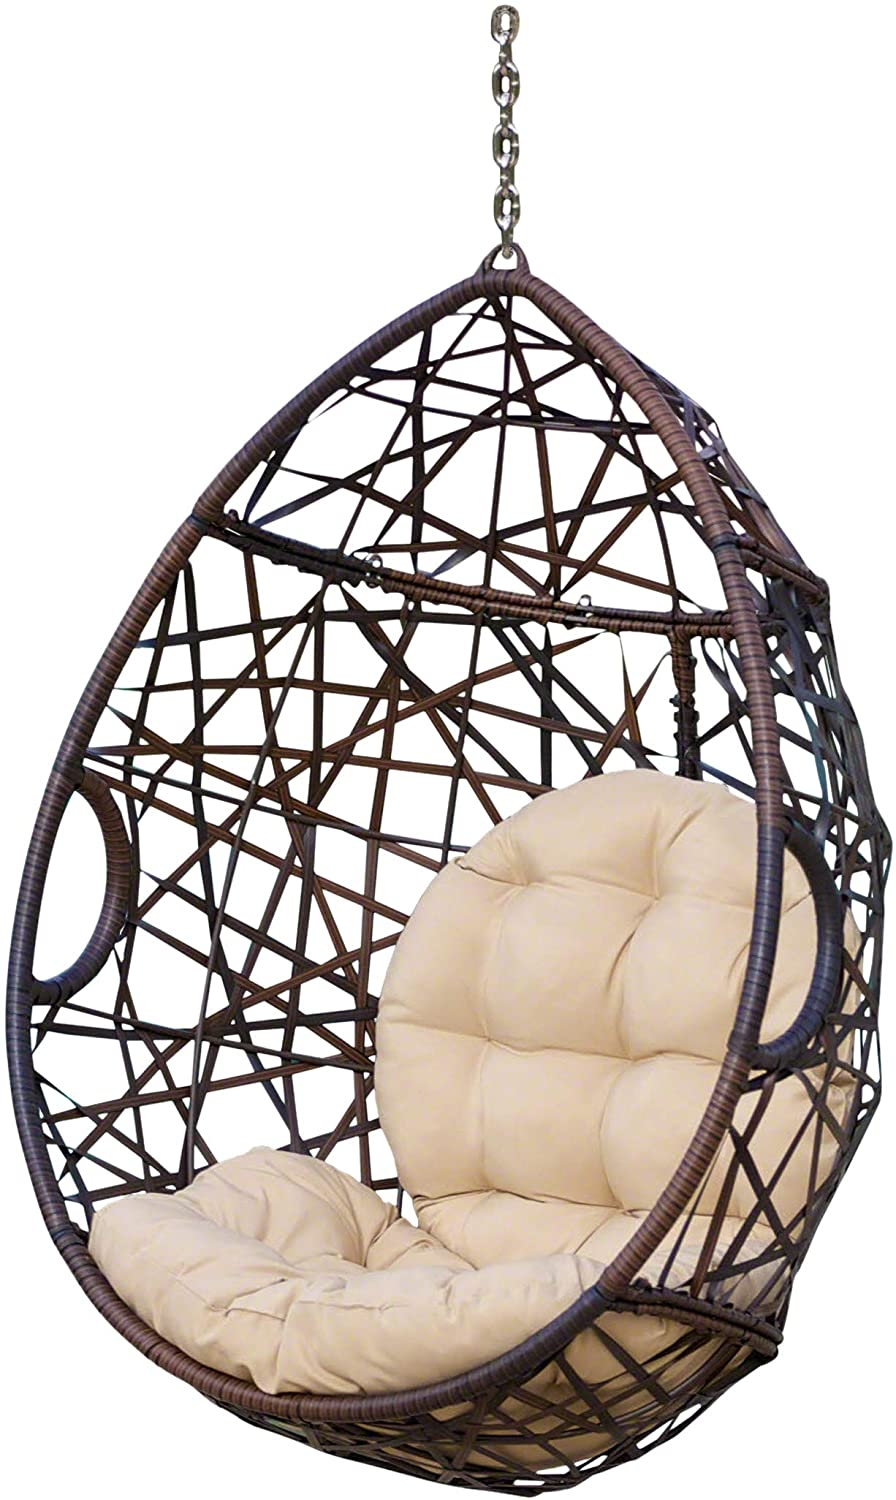 Christopher Popular brand Knight Home Max 85% OFF 312592 Isaiah Tear Indoor Wicker Outdoor